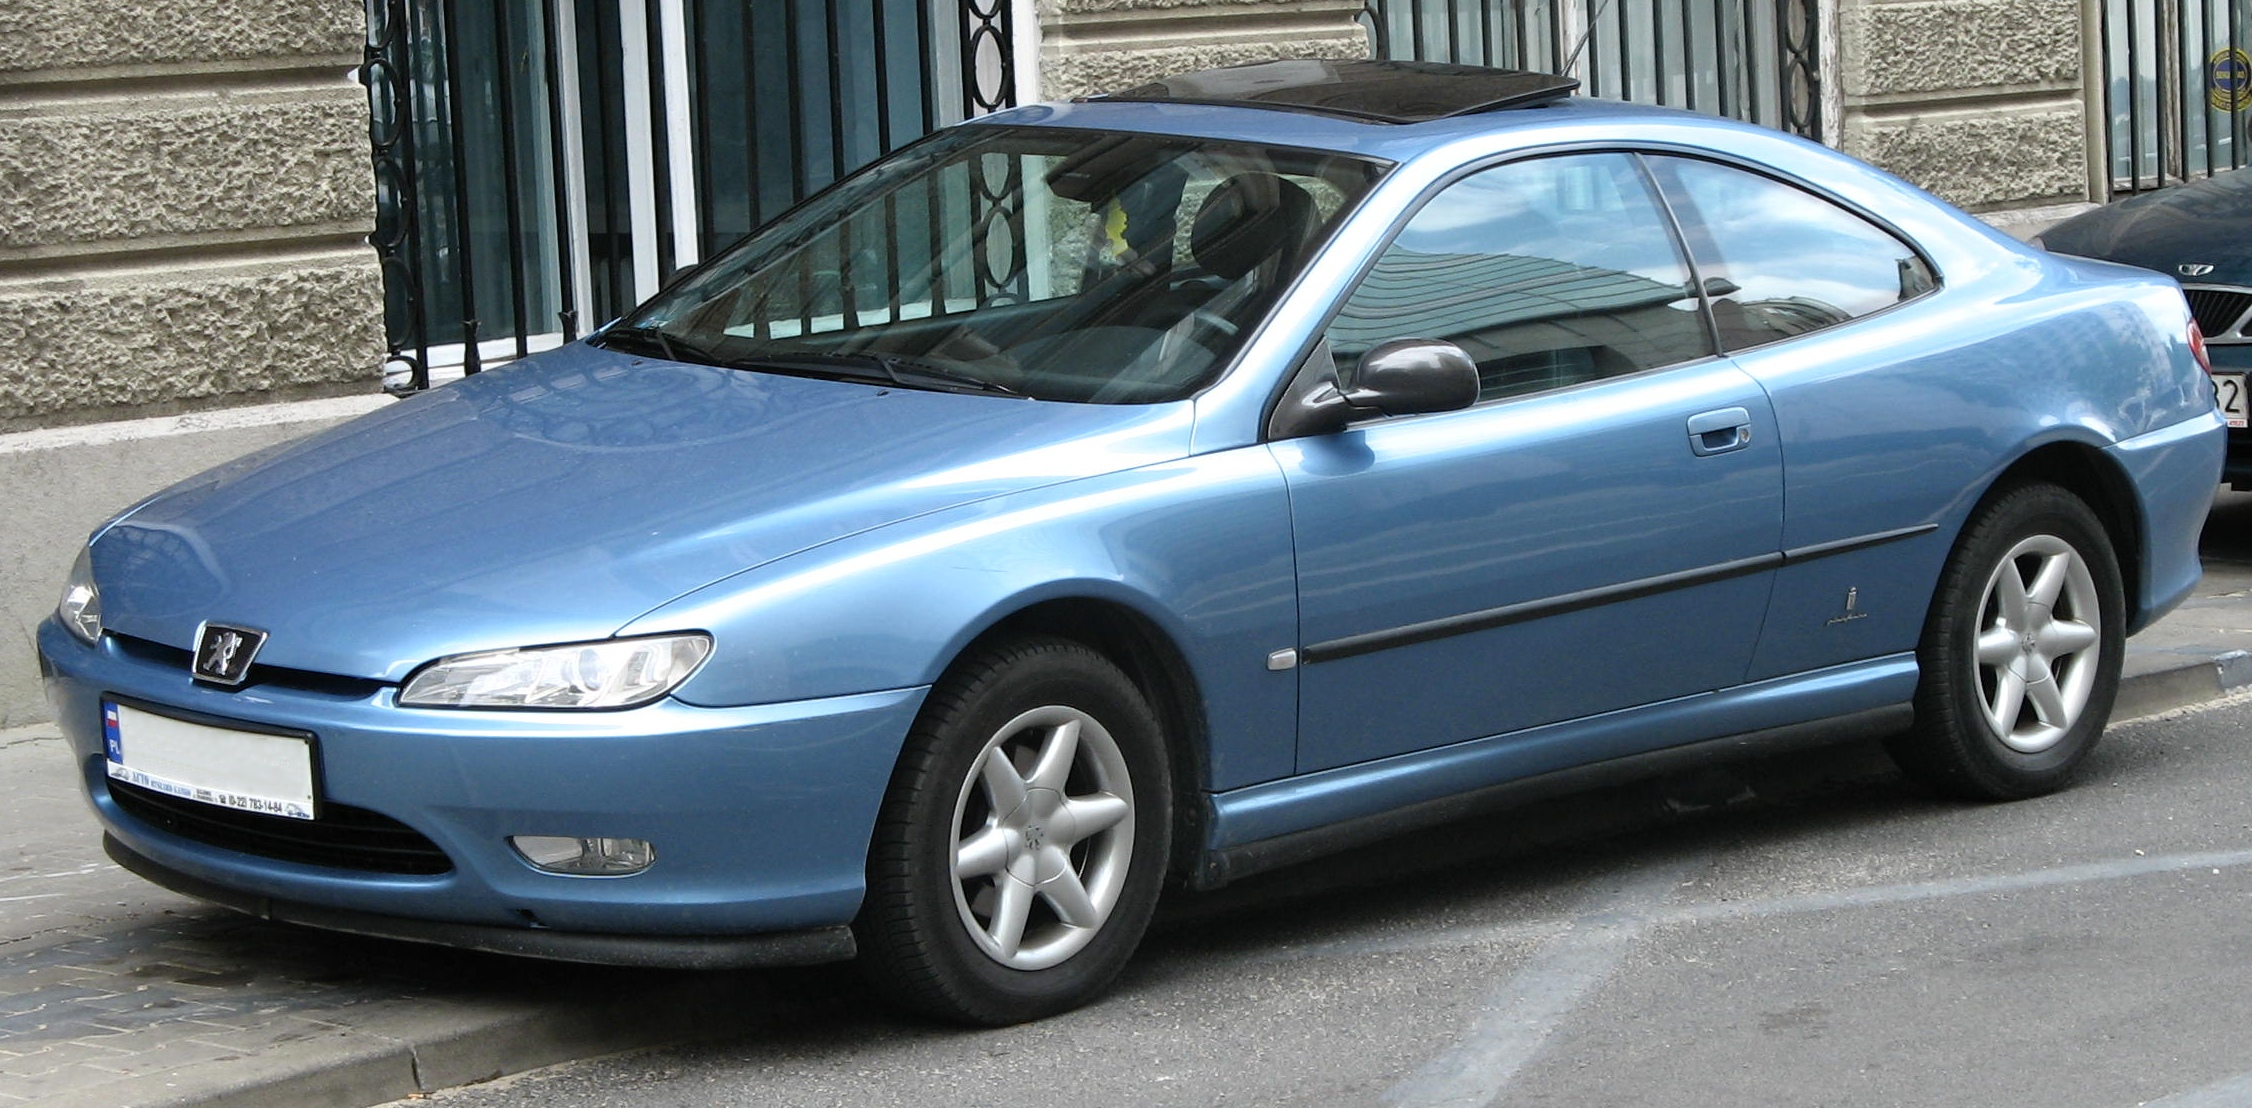 Peugeot 406 Coupé photo 02